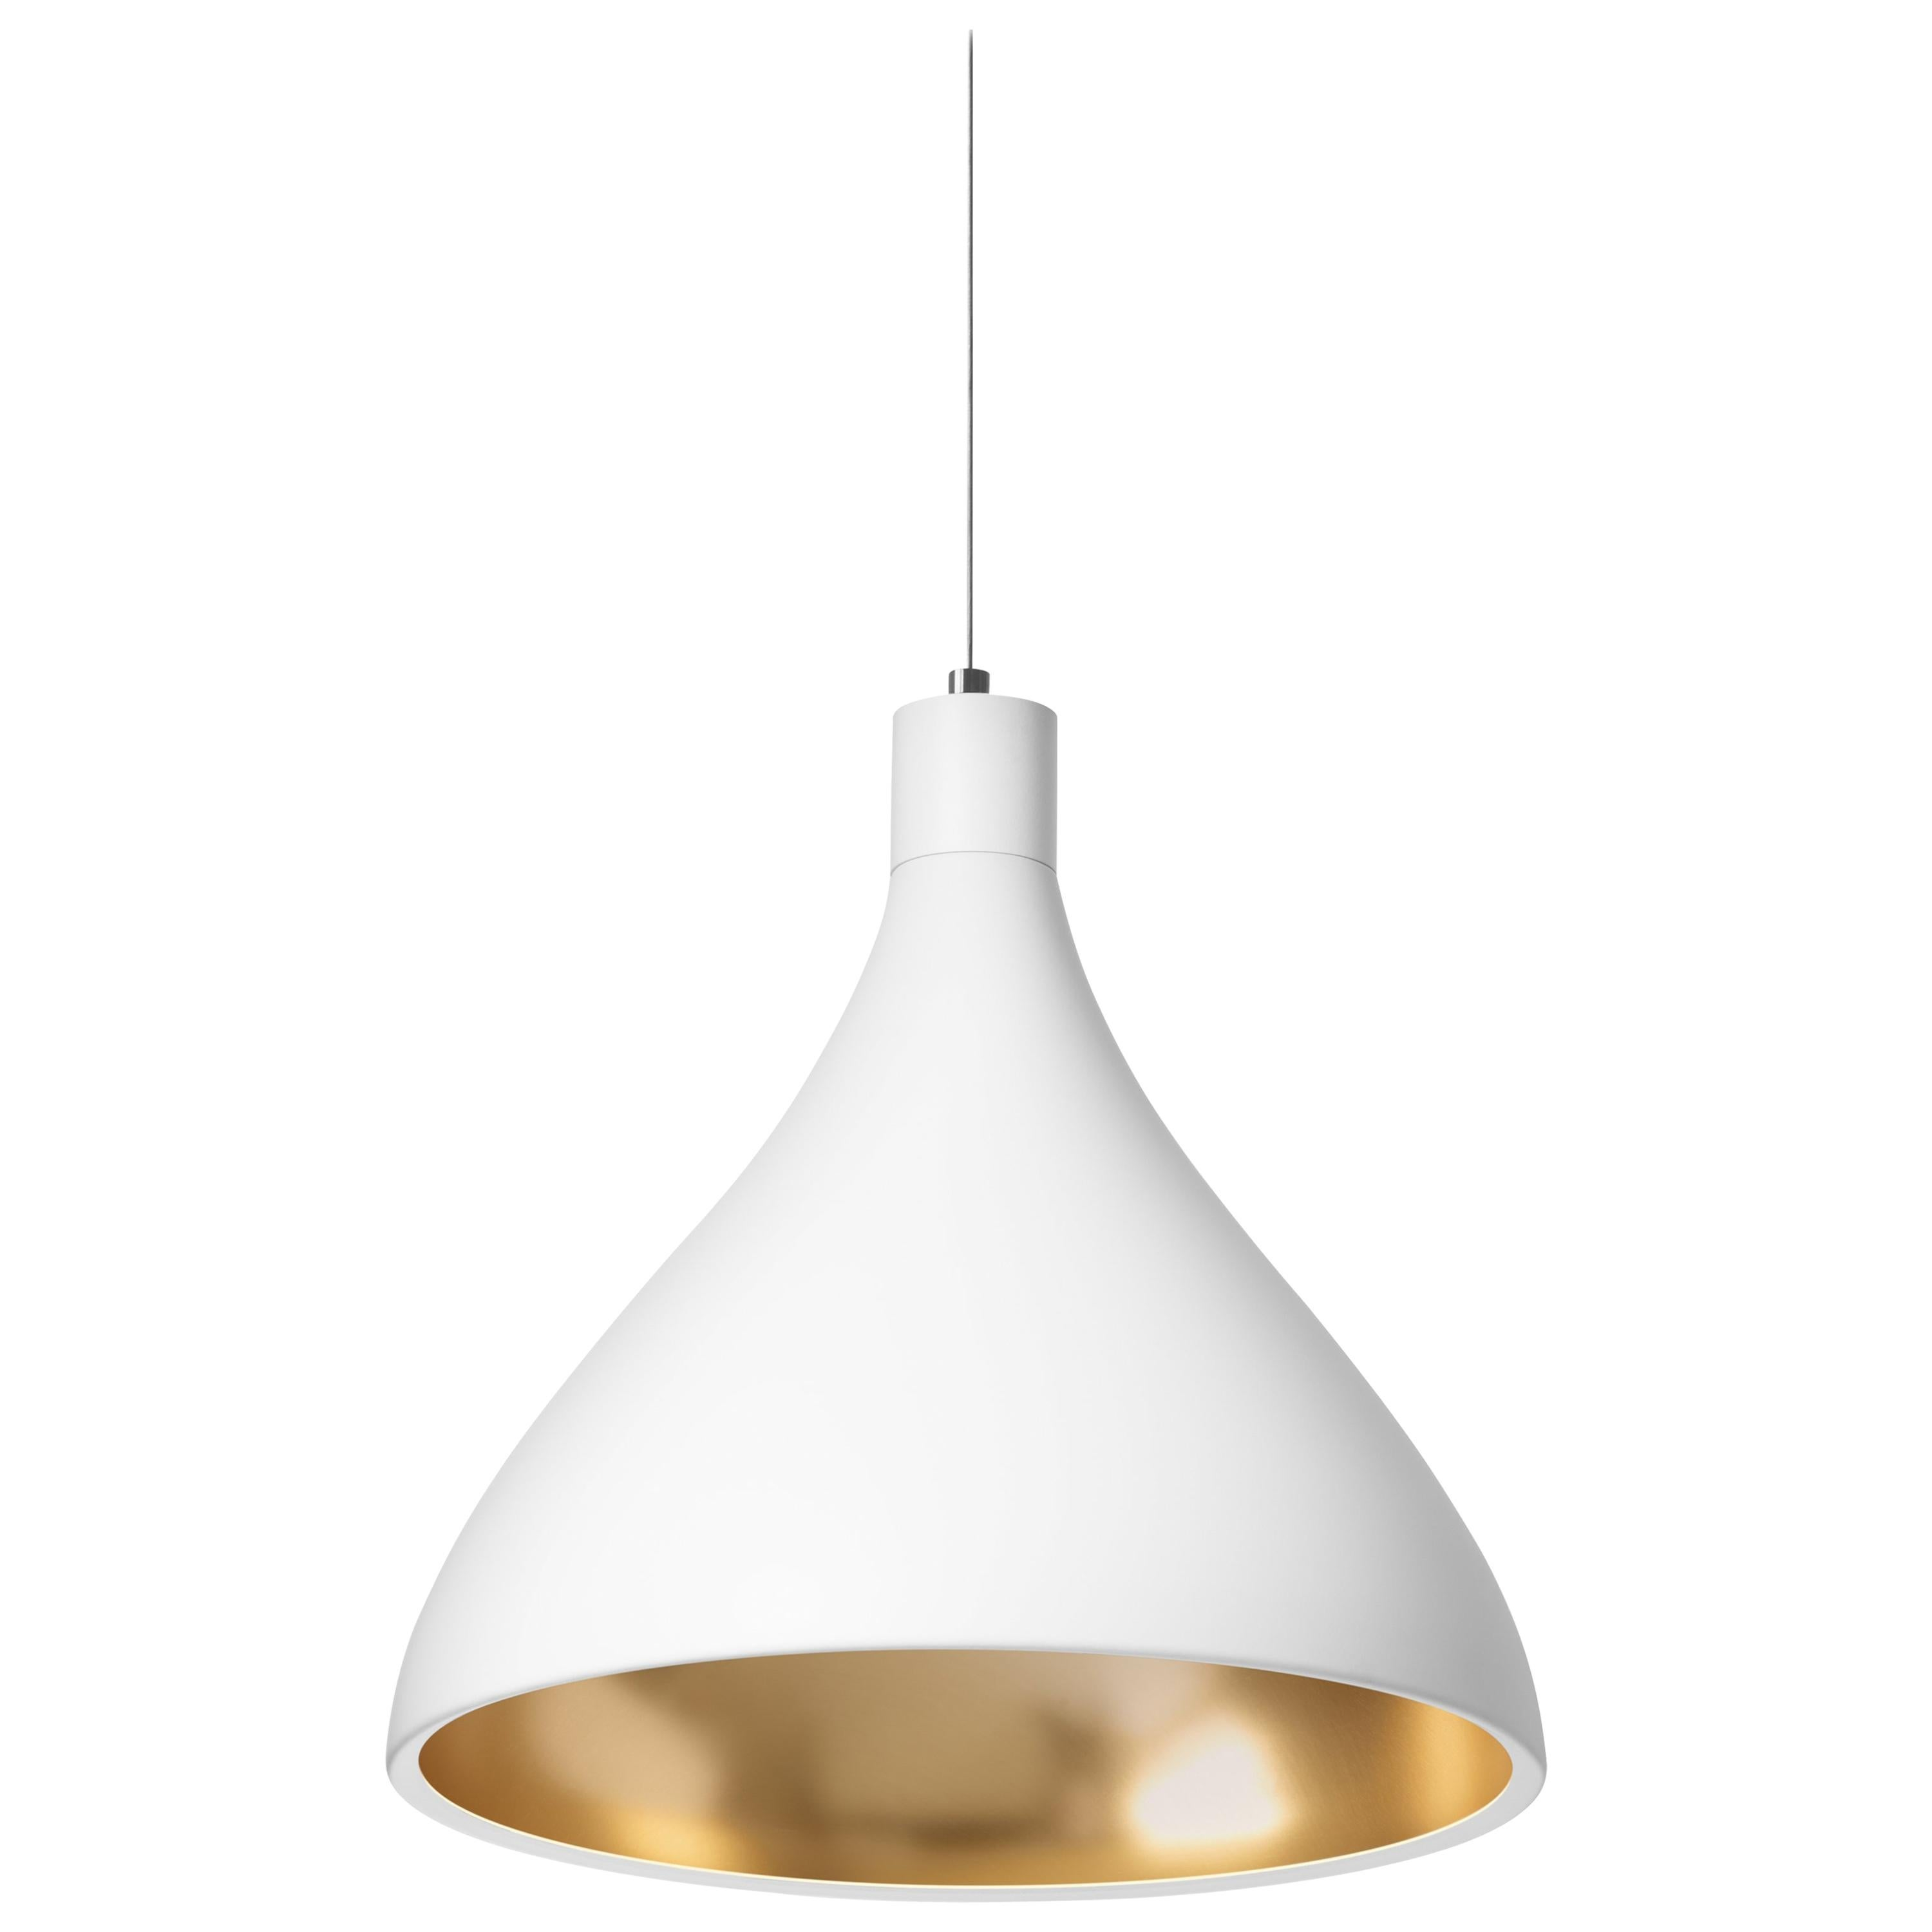 Medium Swell String Pendant Light in White and Brass by Pablo Designs